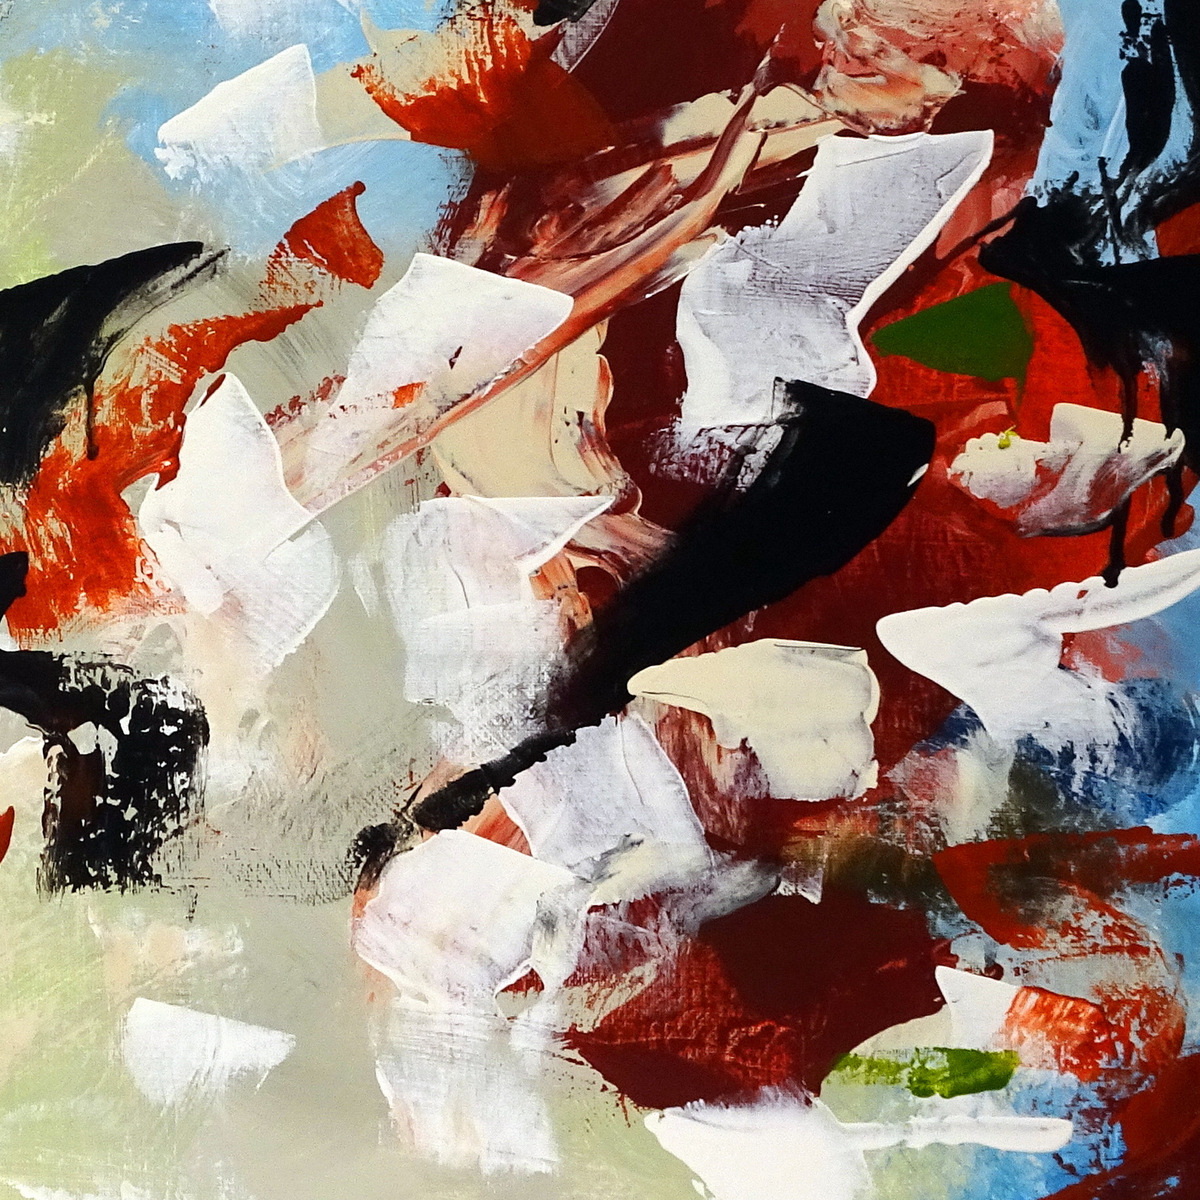 Abstract Expressionist Paintings, Bill Boyd, Black Mountain, NC-016.JPG